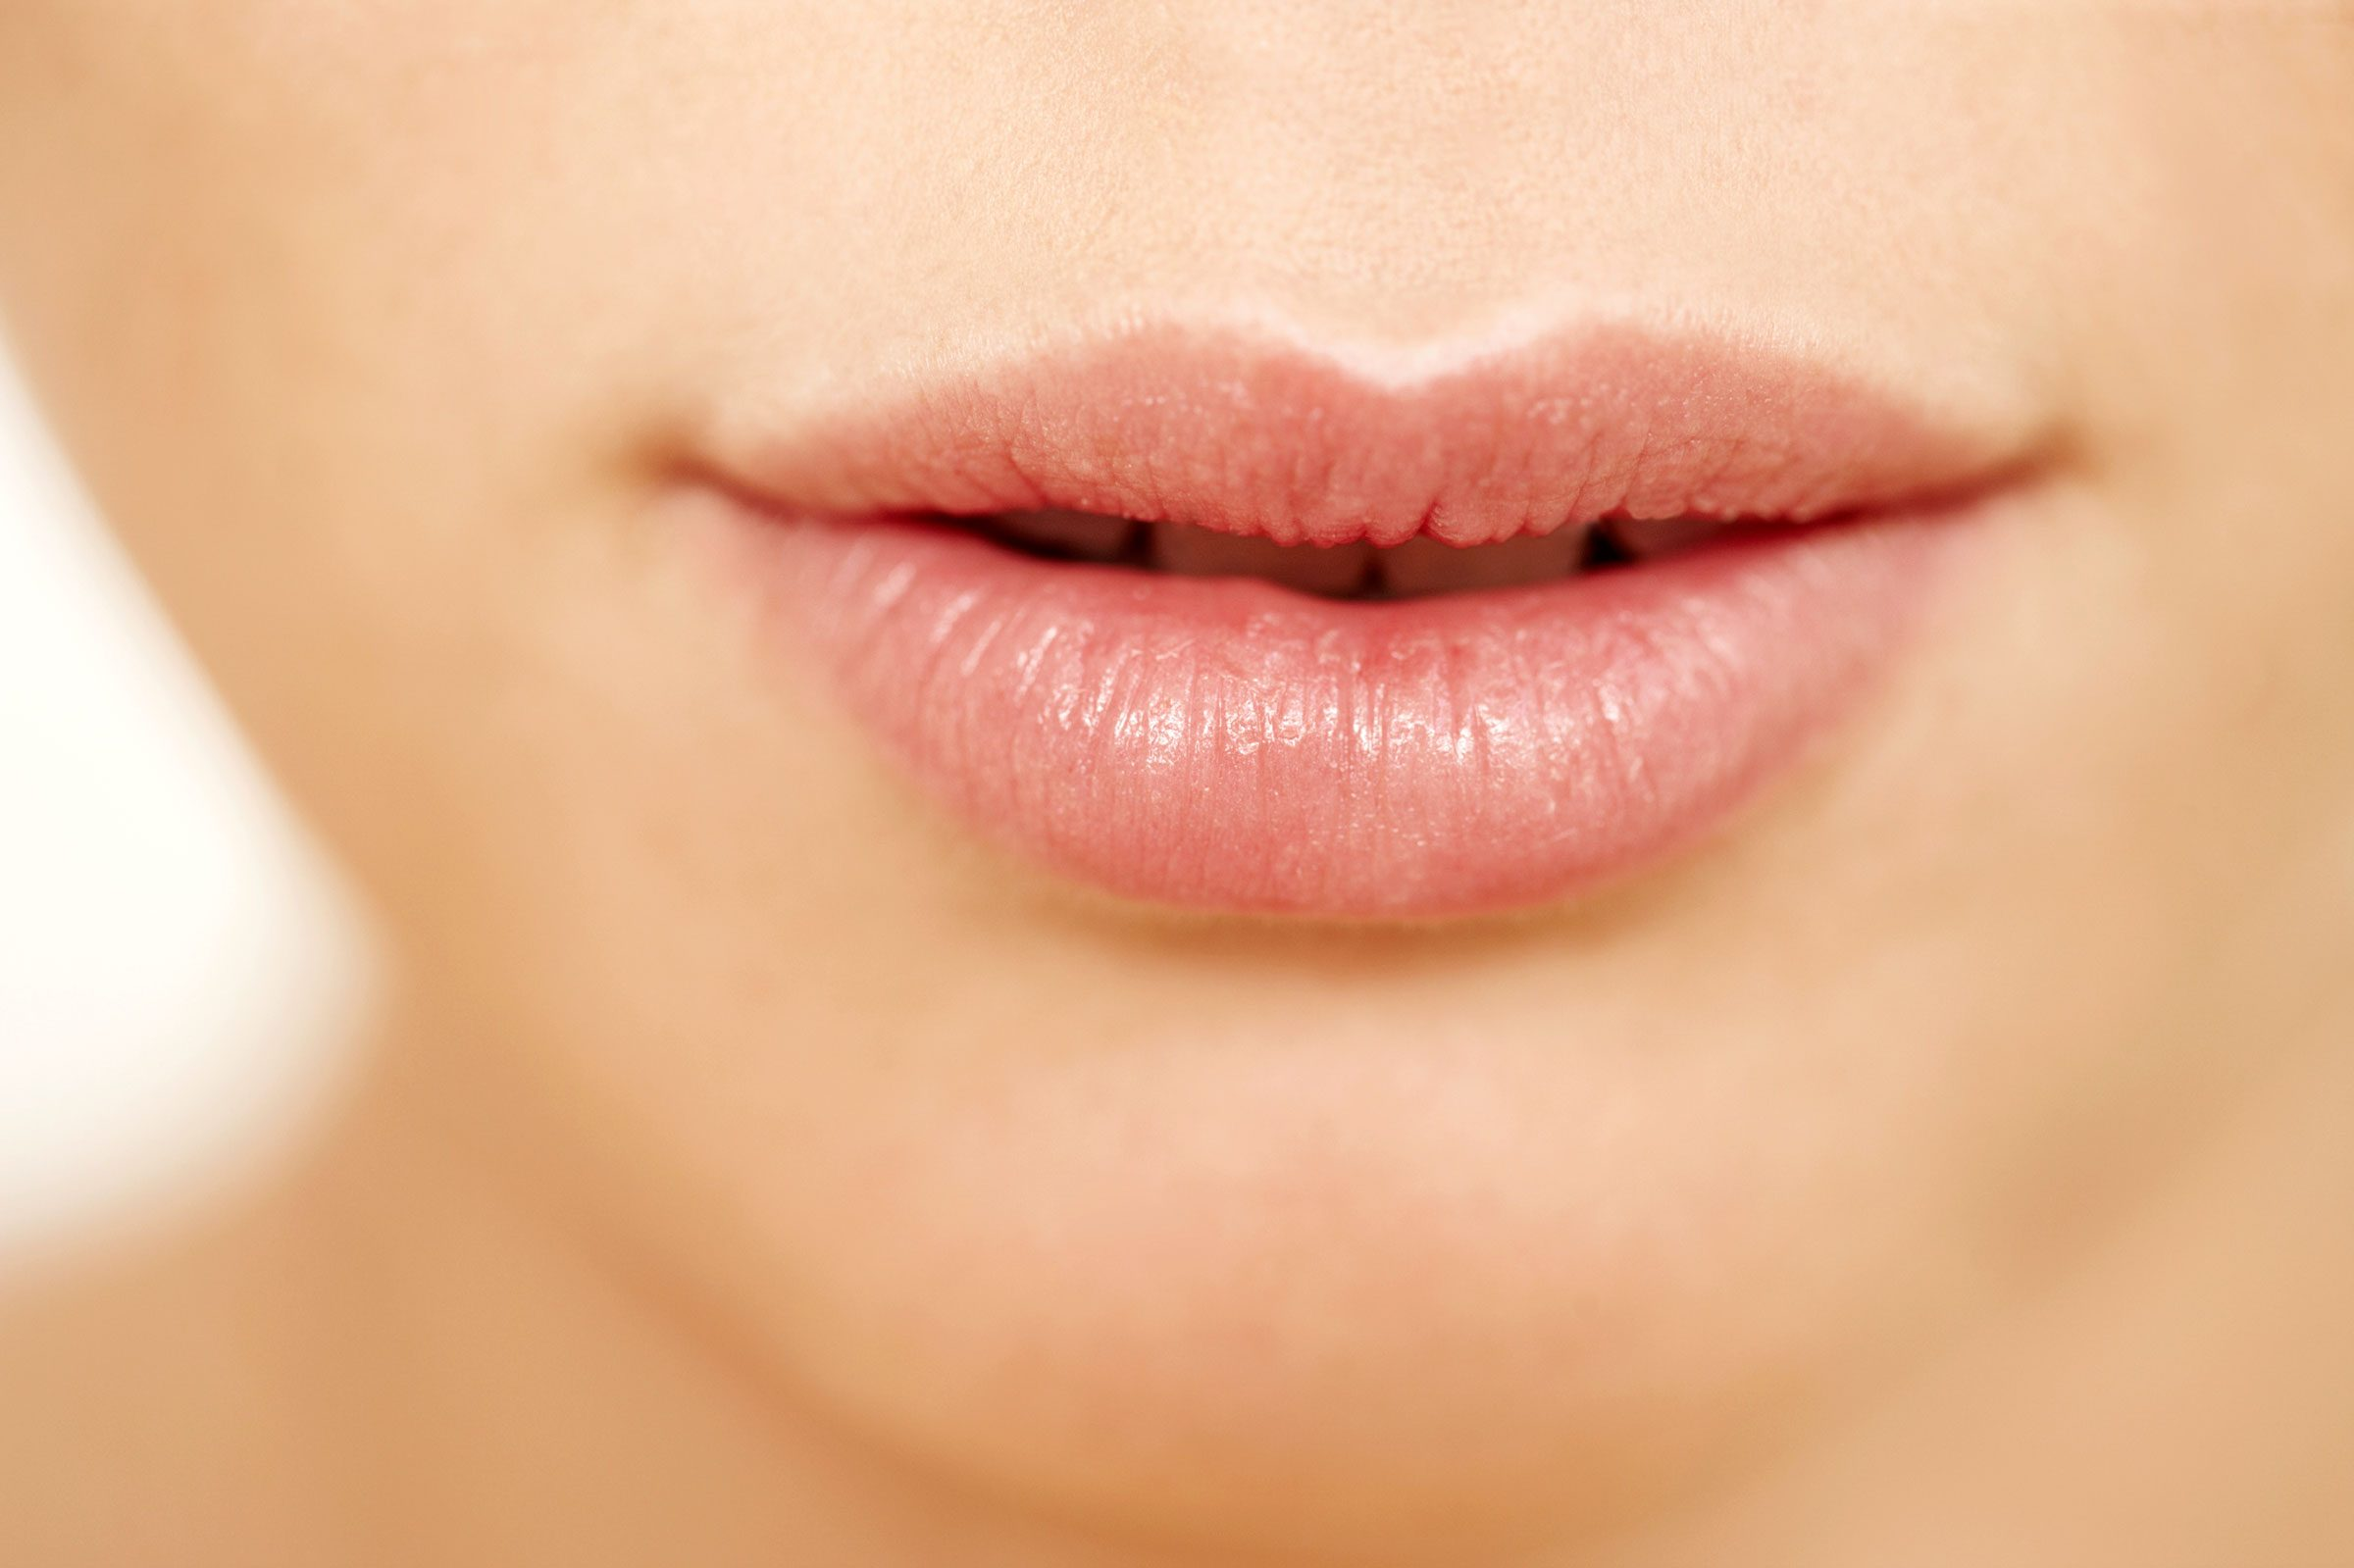 4. Prepare before you pucker up